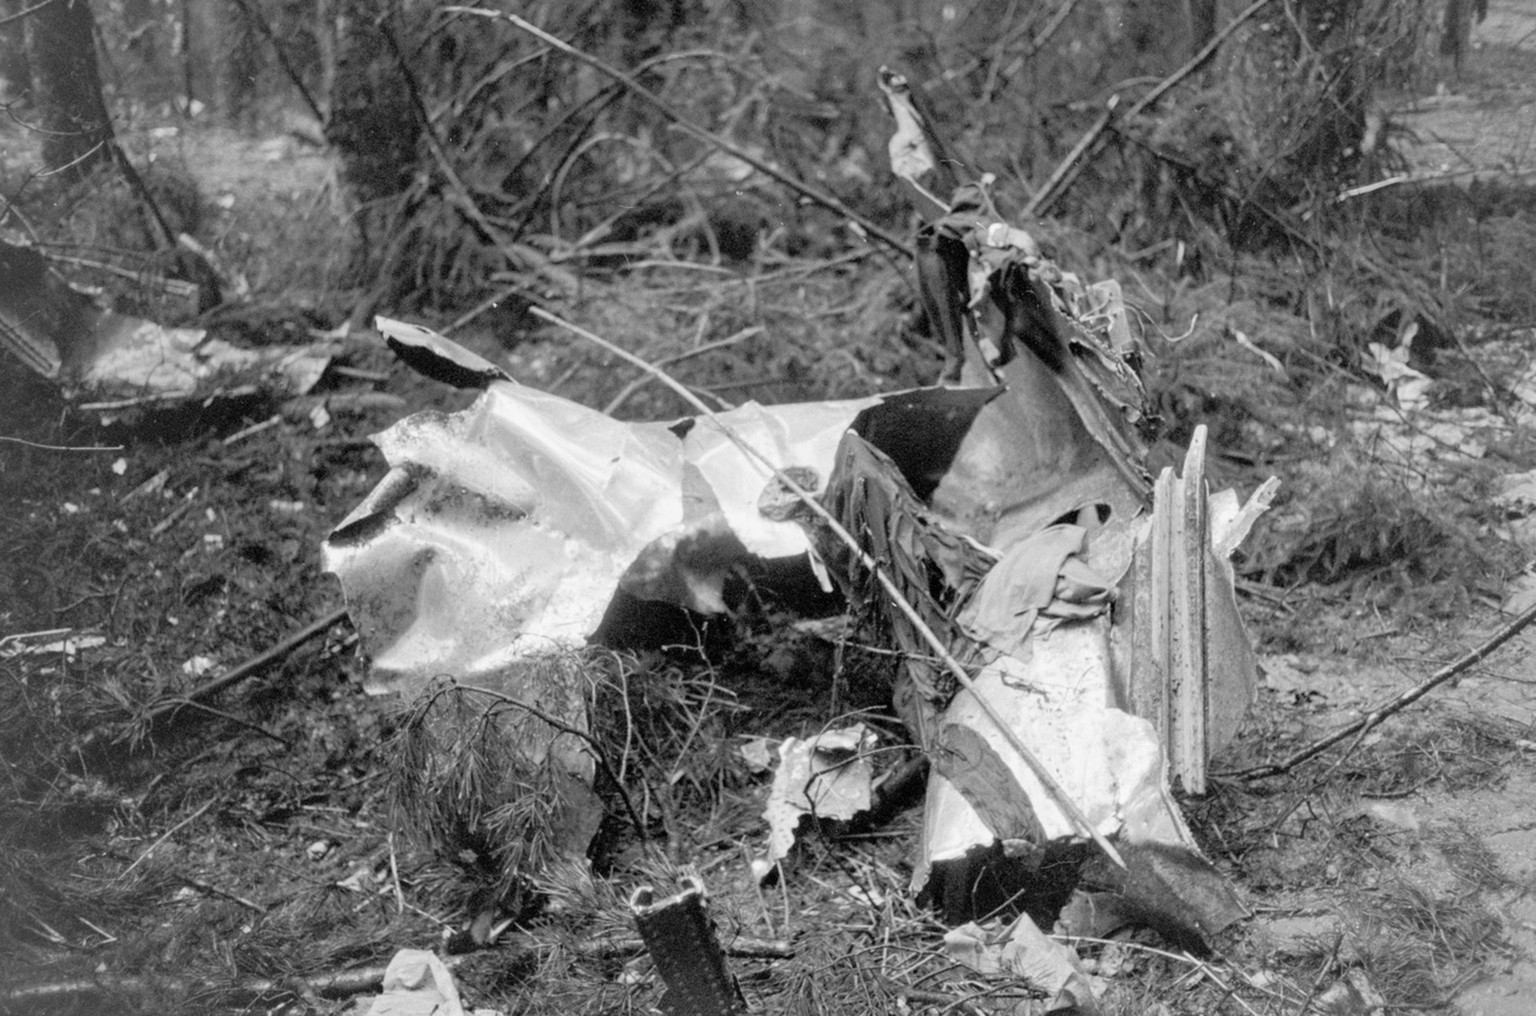 Debris from the Swissair plane, Coronado CV-990, is scattered in the forest near Wuerenlingen in the canton of Aargau. On 21 February 1970, shortly after take-off, a bomb set by Palestinian terrorists exploded in the cargo hold. The captain tried to fly back to Kloten airport after the detonation, but the plane crashed into a forest near Wuerenlingen. The 38 passengers and the 9 crew members died in the crash. (KEYSTONE/Str)  Truemmerteile des Swissairflugzeuges, Coronado CV-990, liegen verstreut im Wald in der Naehe von Wuerenlingen im Kanton Aargau. Am 21. Februar 1970 explodierte - kurz nach dem Start - im Frachtraum eine Bombe, die von palaestinensischen Terroristen gelegt worden war. Der Captain versuchte nach der Detonation zum Flughafen Kloten zurueckzufliegen, die Maschine stuerzte jedoch bei Wuerenlingen in einen Wald ab. Die 38 Passagiere und die 9 Besatzungsmitglieder kamen bei dem Absturz ums Leben. (KEYSTONE/Str)